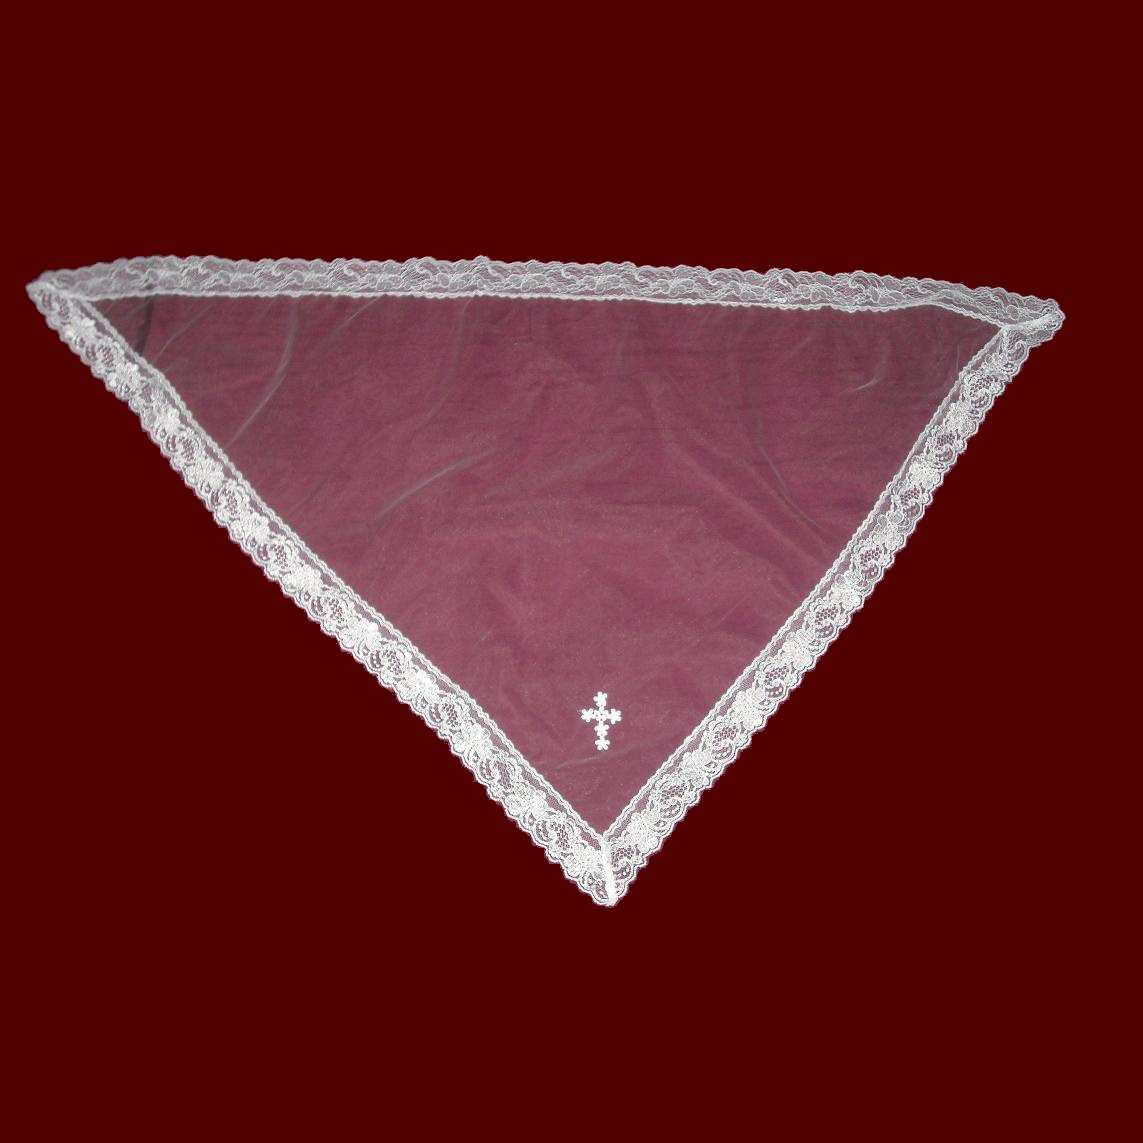 Communion Mantilla with Floral Lace & Cross